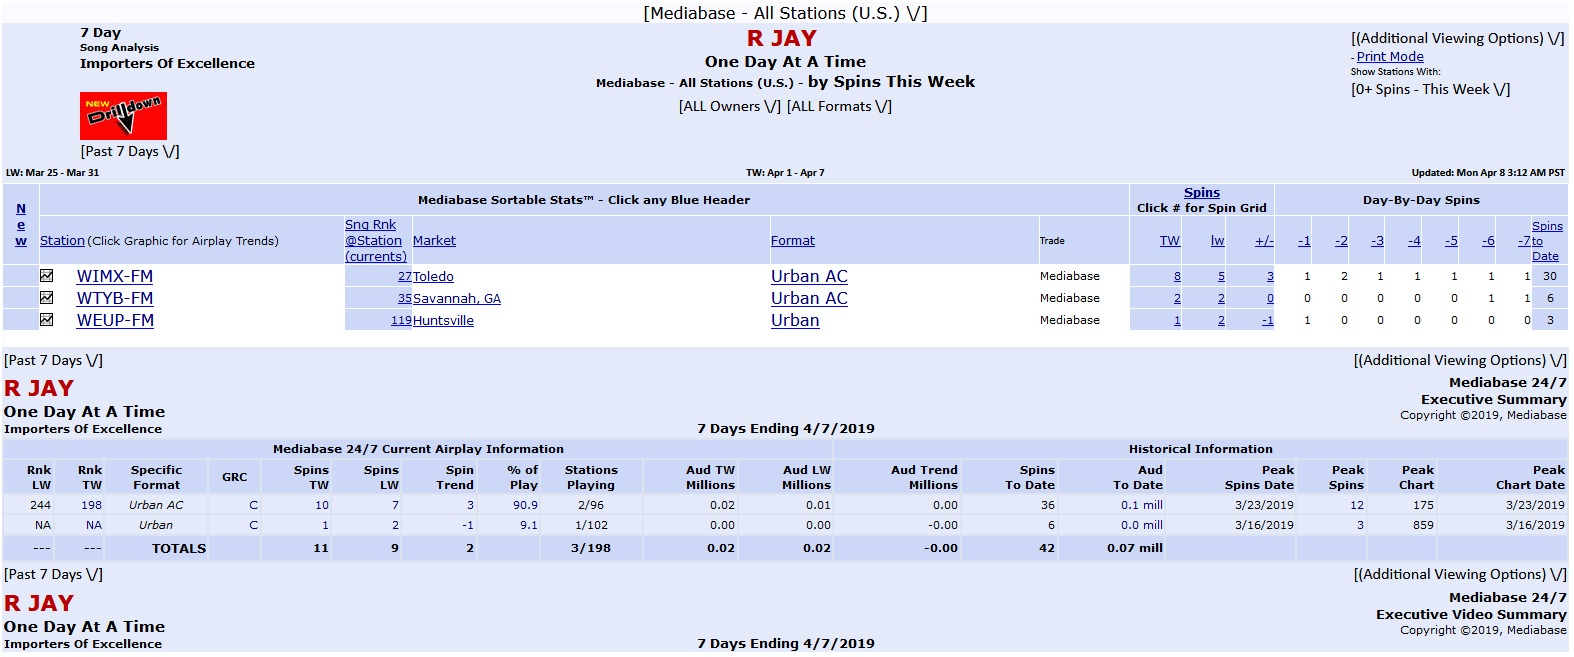 RJAY - MEDIABASE AIRPLAY REPORT